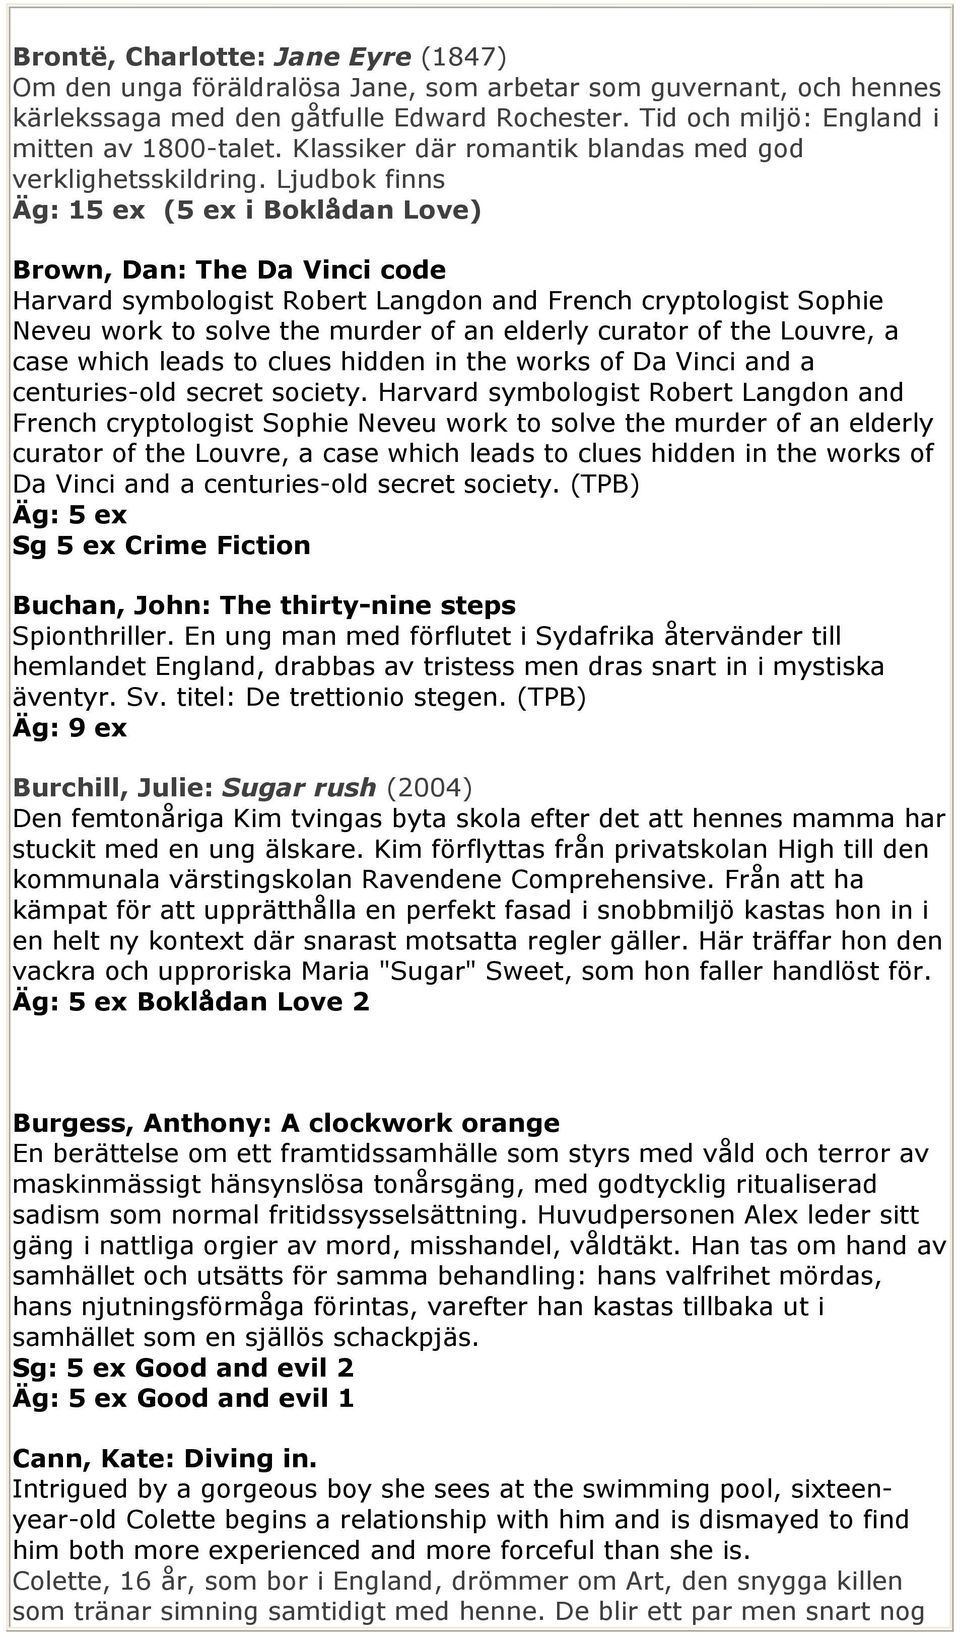 Ljudbok finns Äg: 15 ex (5 ex i Boklådan Love) Brown, Dan: The Da Vinci code Harvard symbologist Robert Langdon and French cryptologist Sophie Neveu work to solve the murder of an elderly curator of